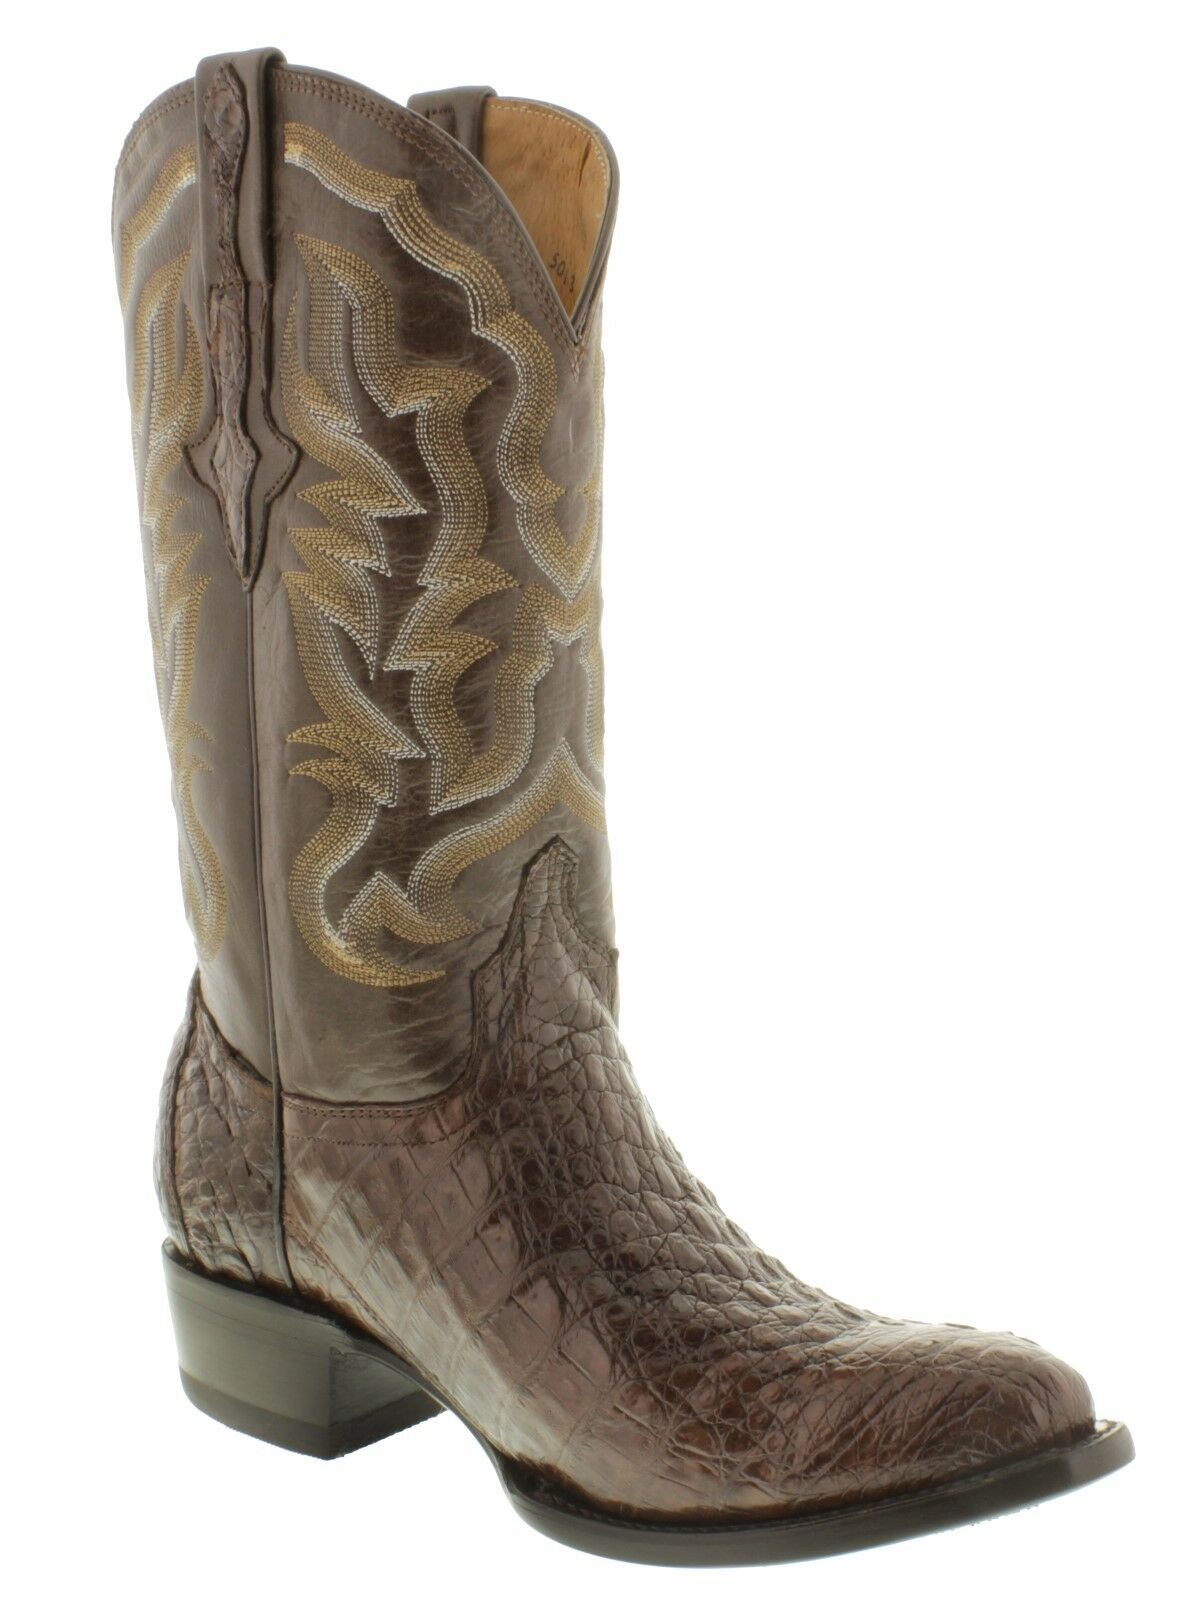 Brown All Cowboy Real Crocodile Skin Leather Cowboy All Boots Exotic Alligator Round Toe 4edf95